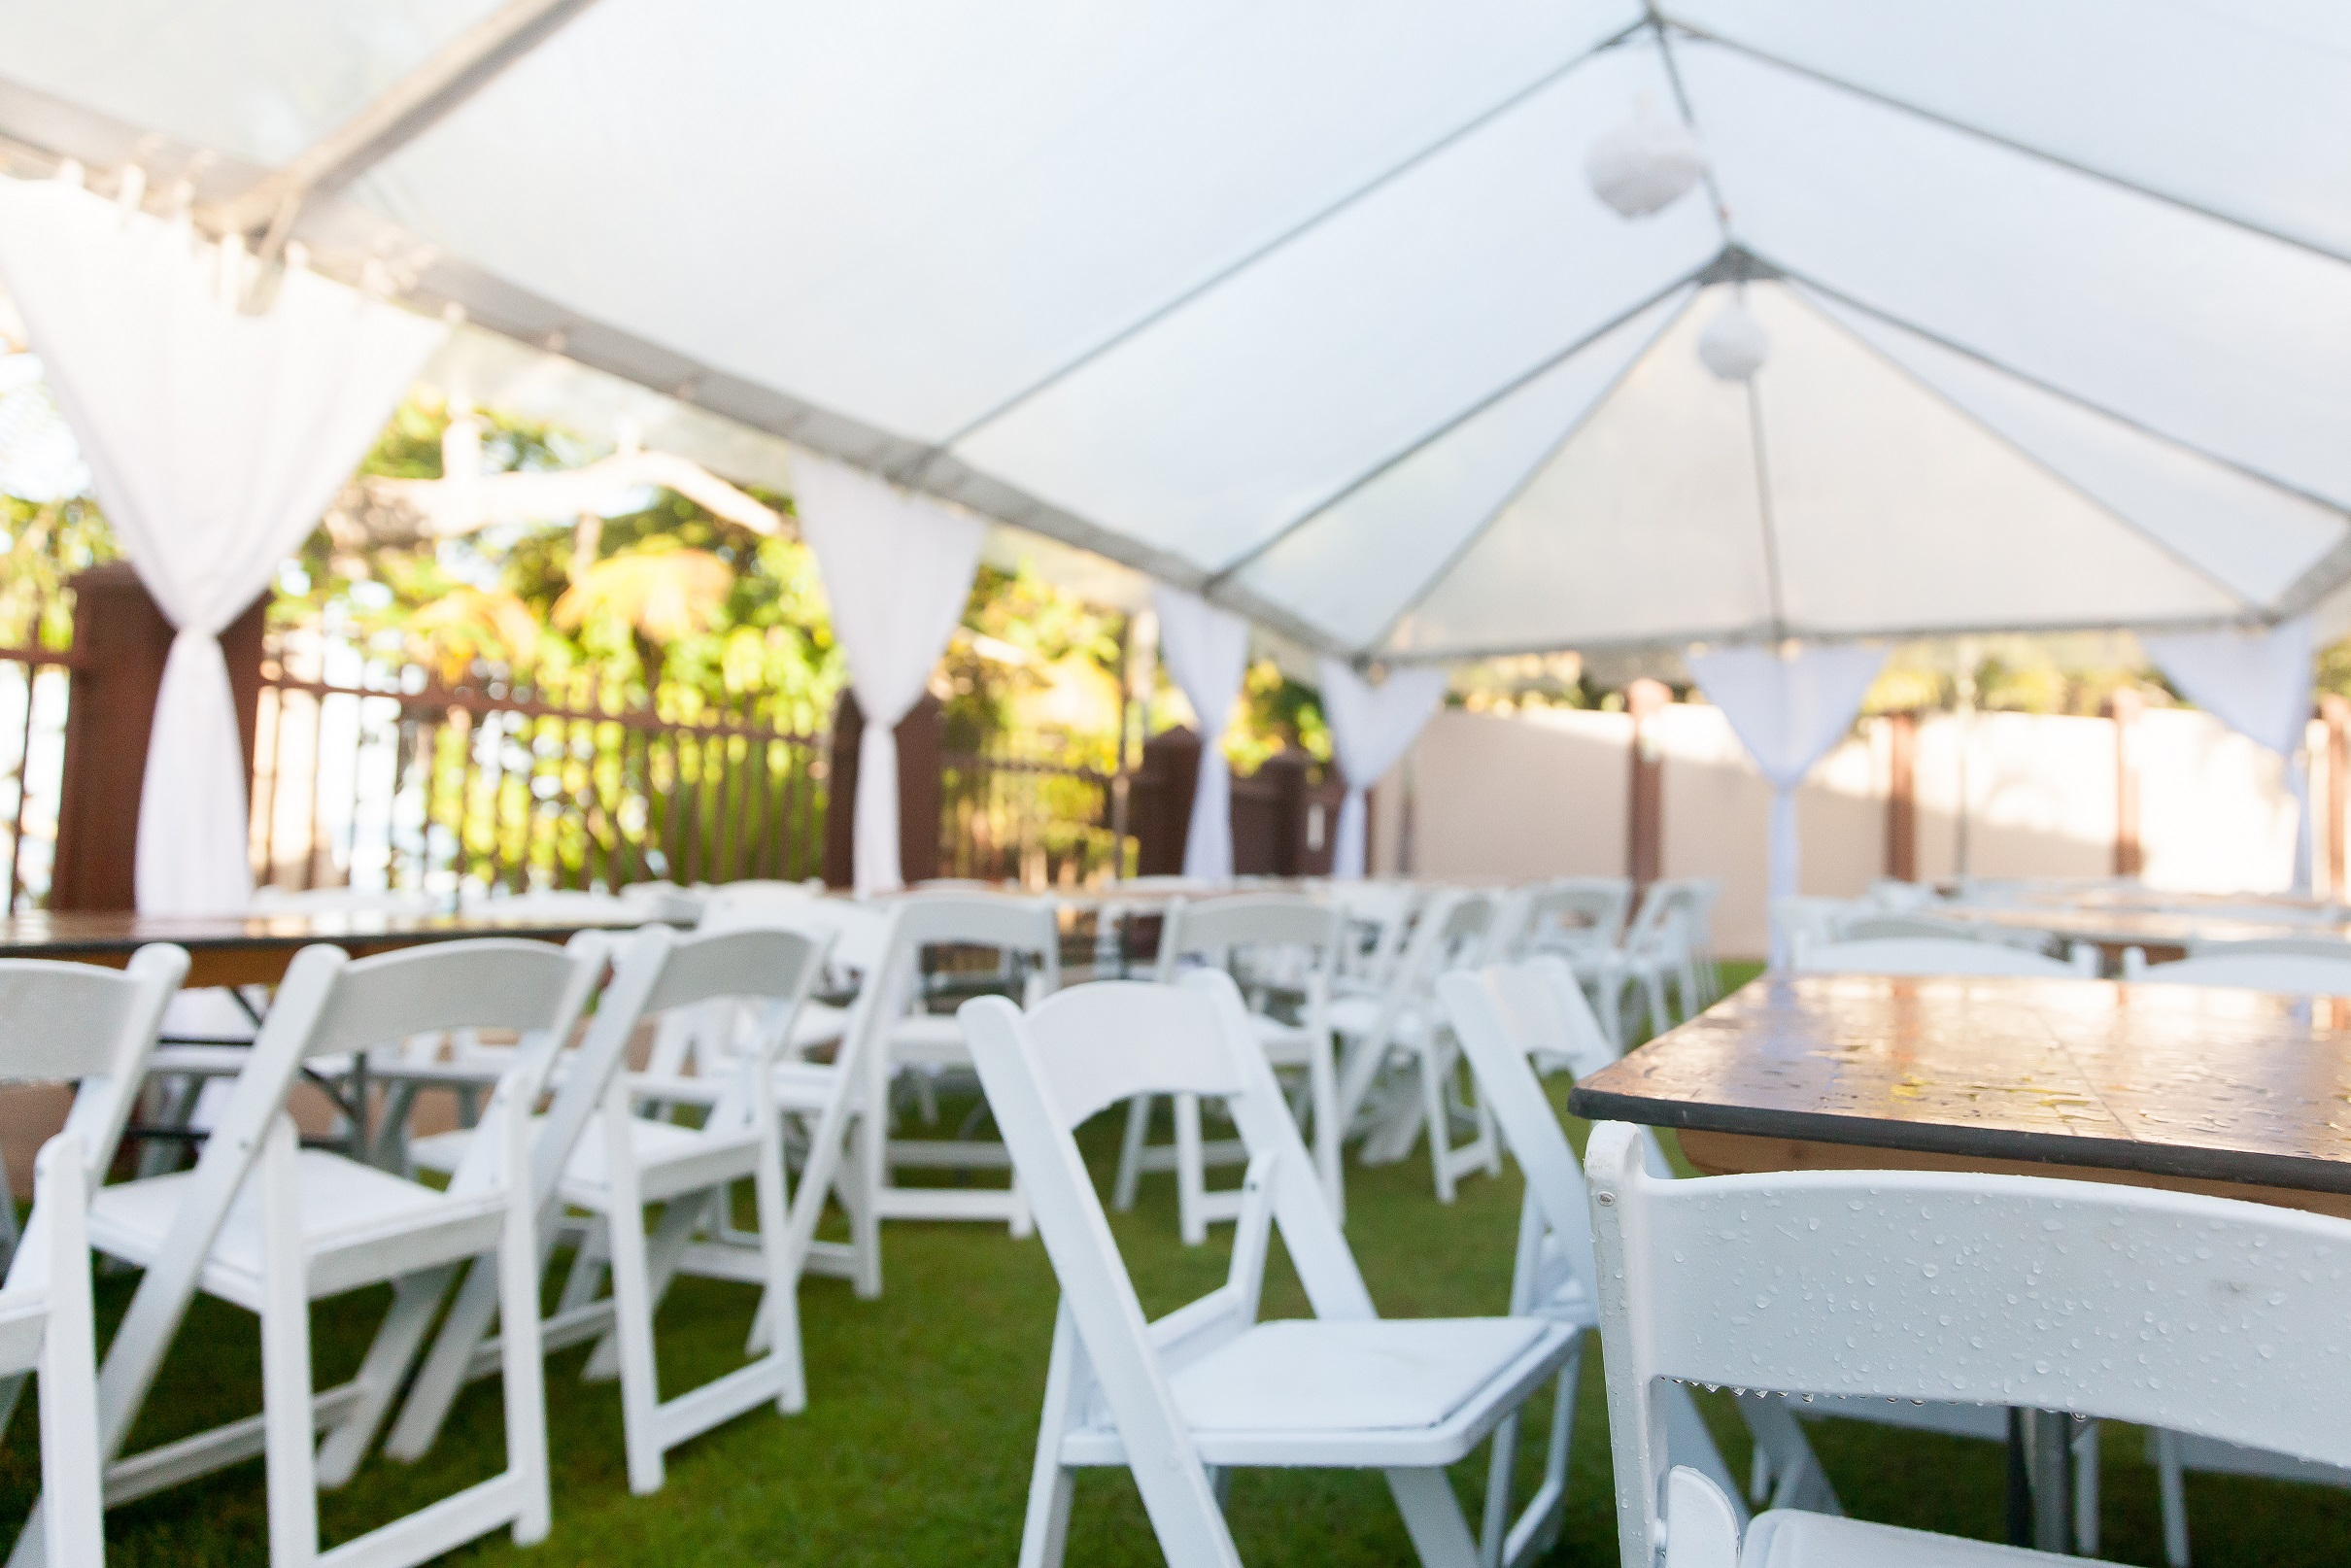 The wedding tent - 4 things you need to know